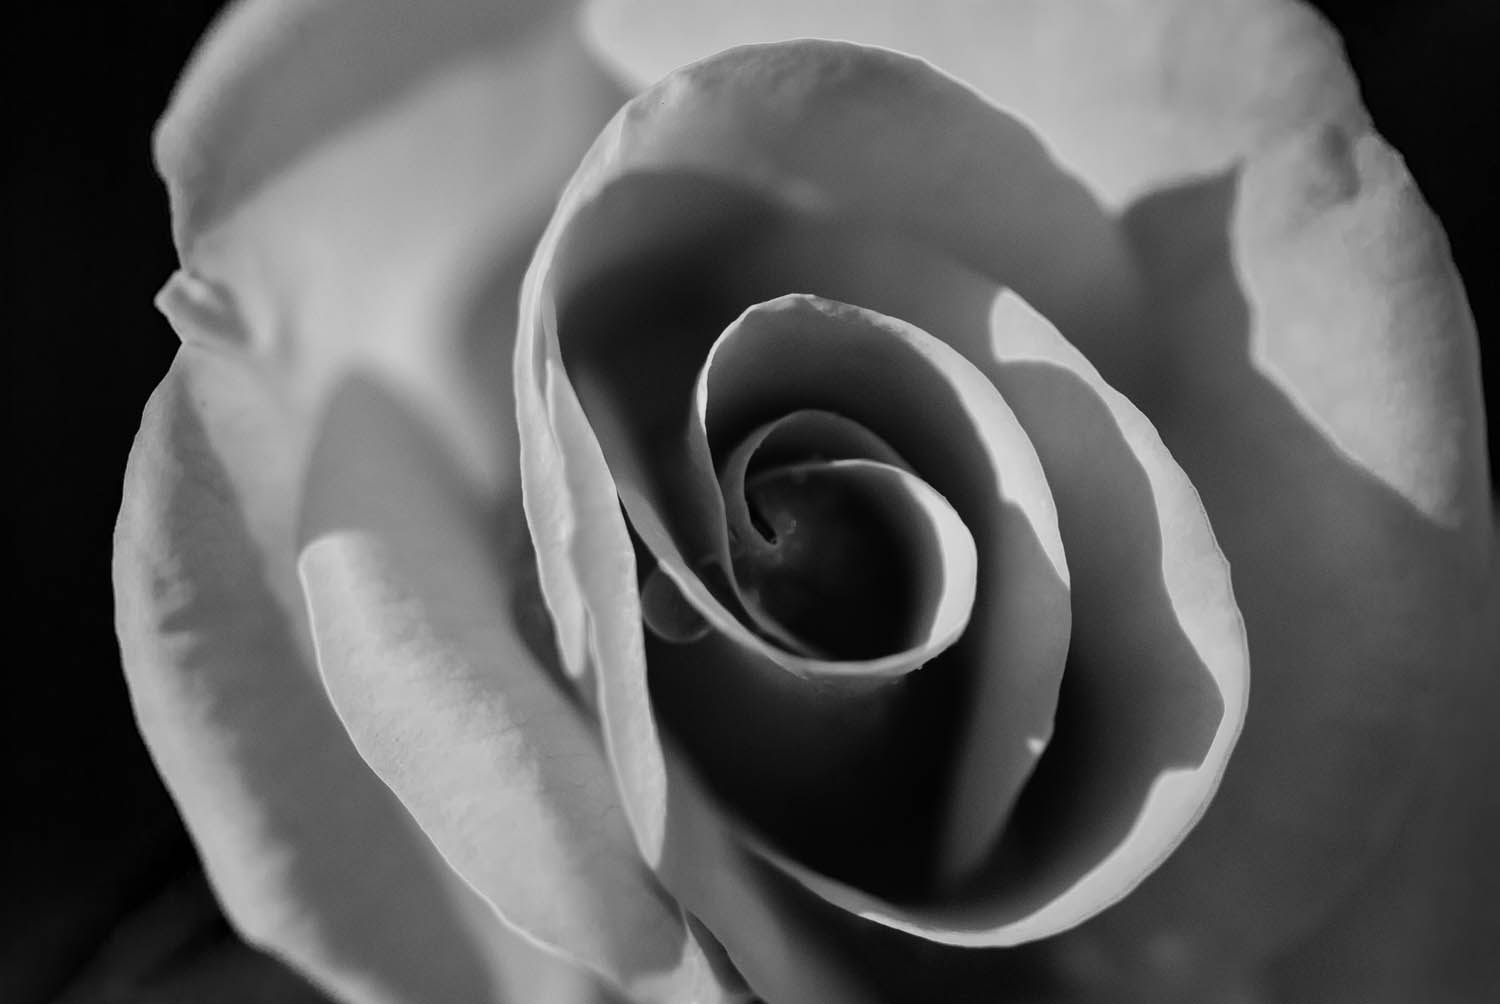 Orange rose Black and White